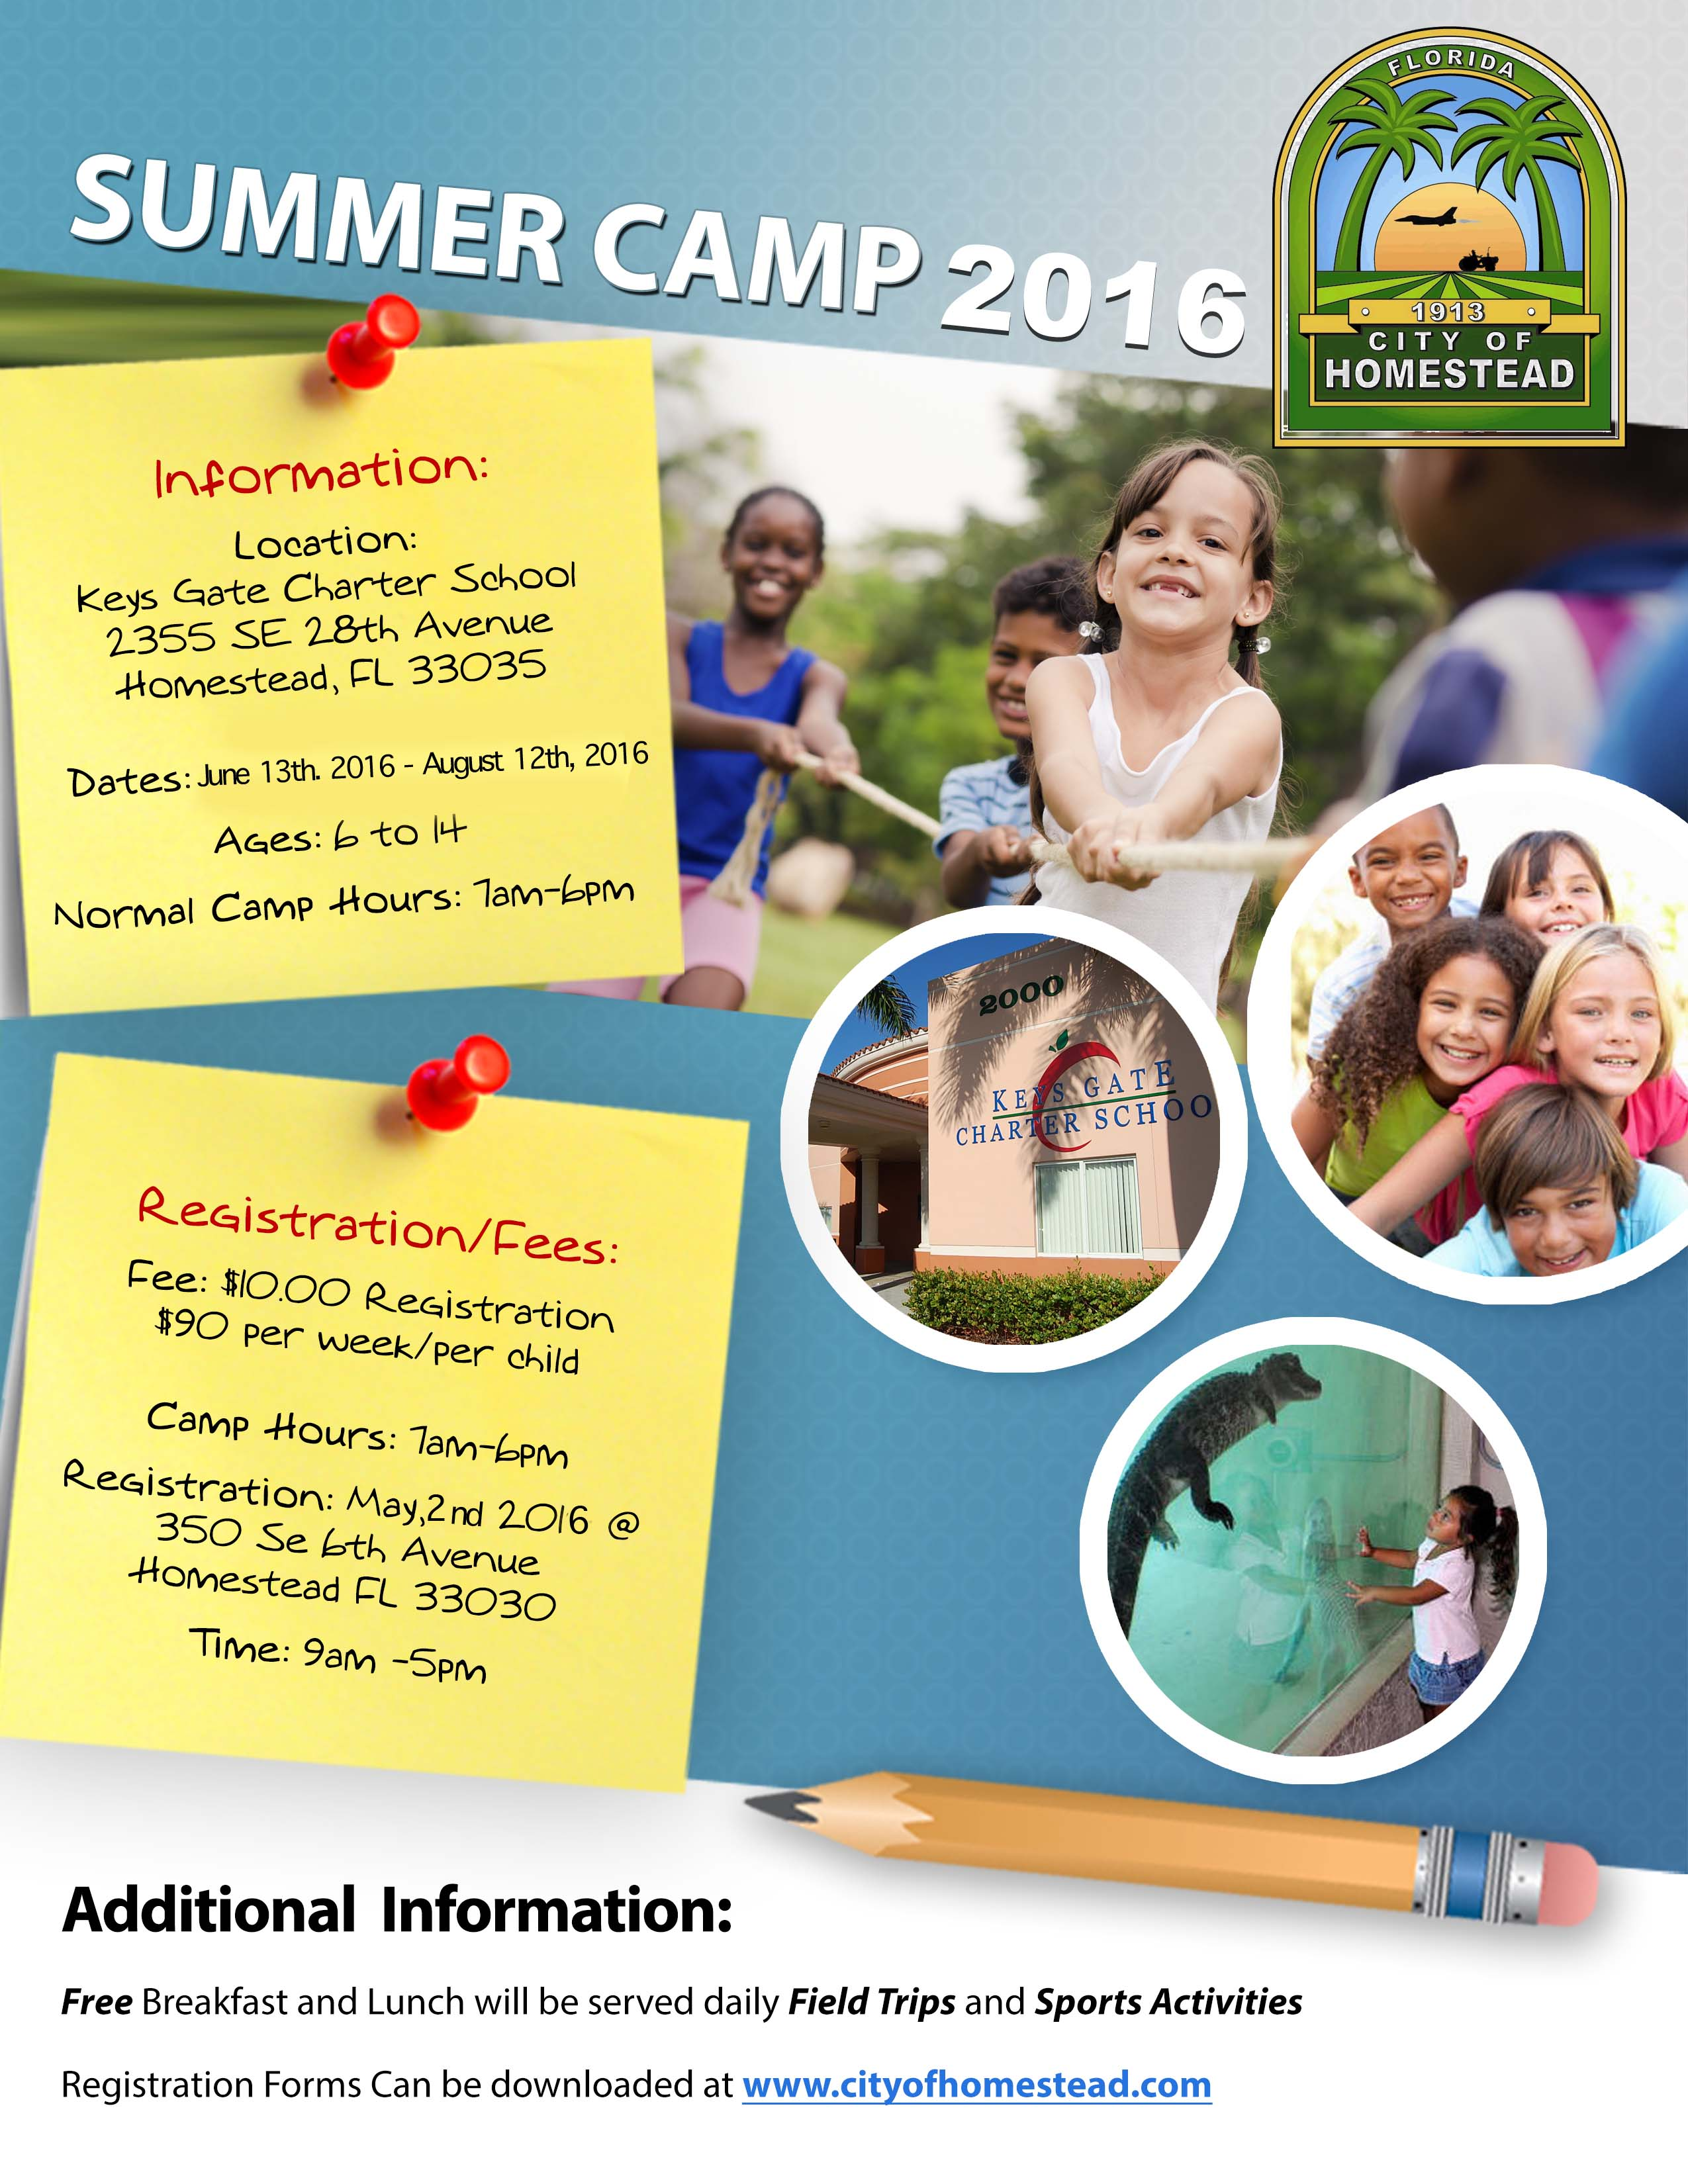 Summer Camp 2016 Flyer